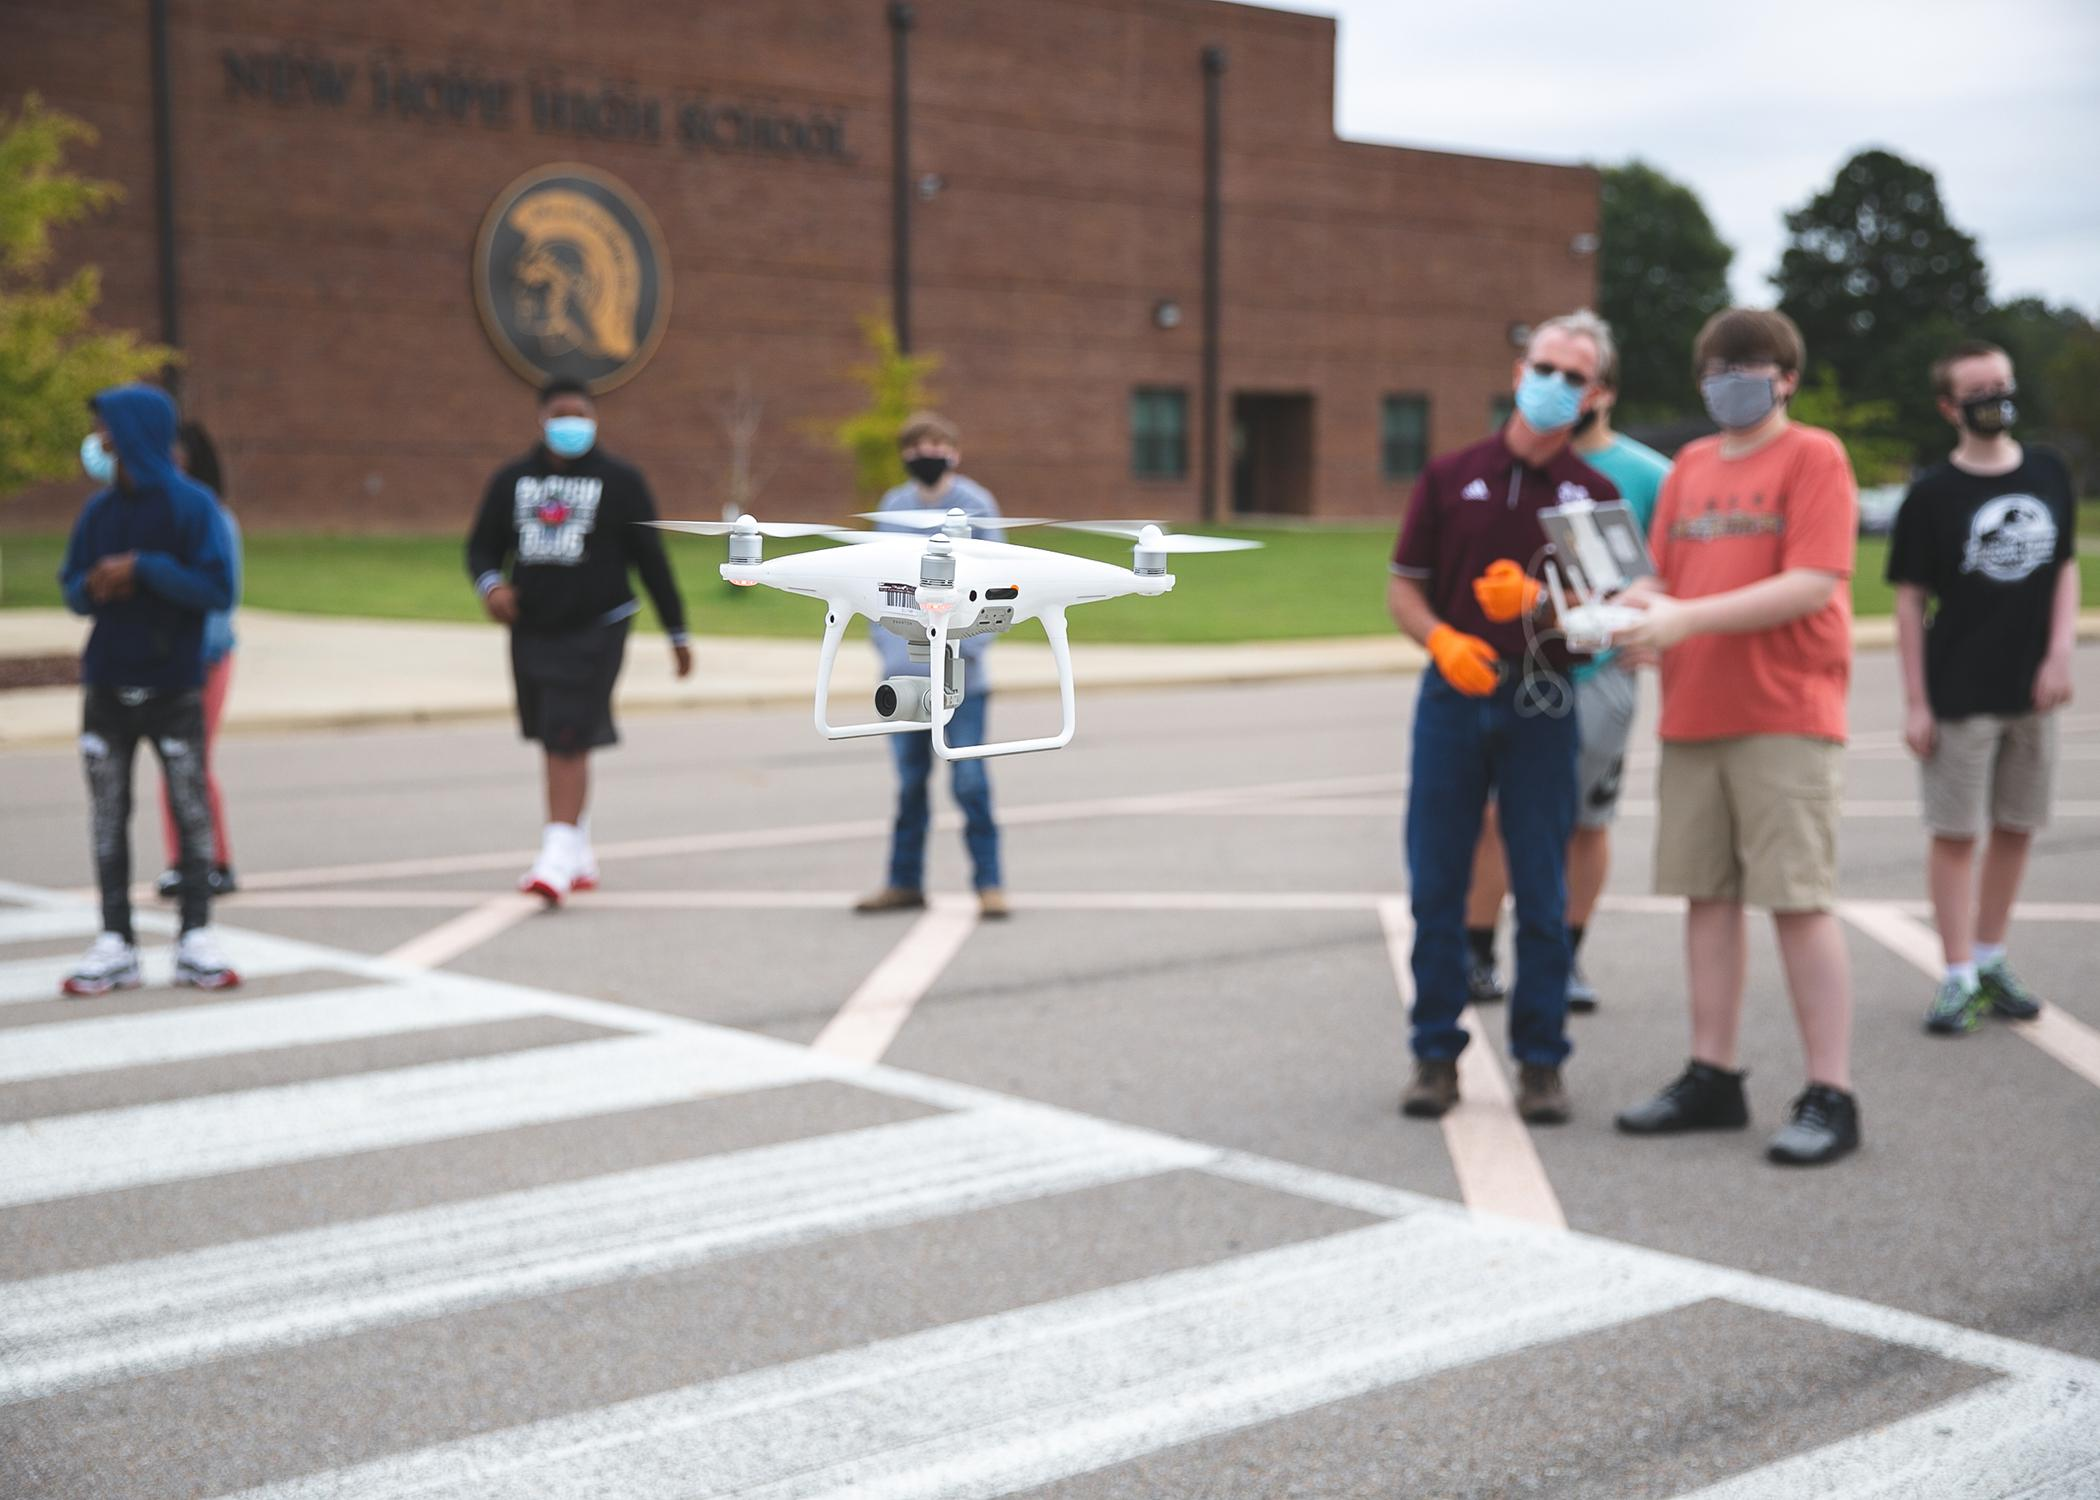 A drone in the foreground being controlled by young students in the background.